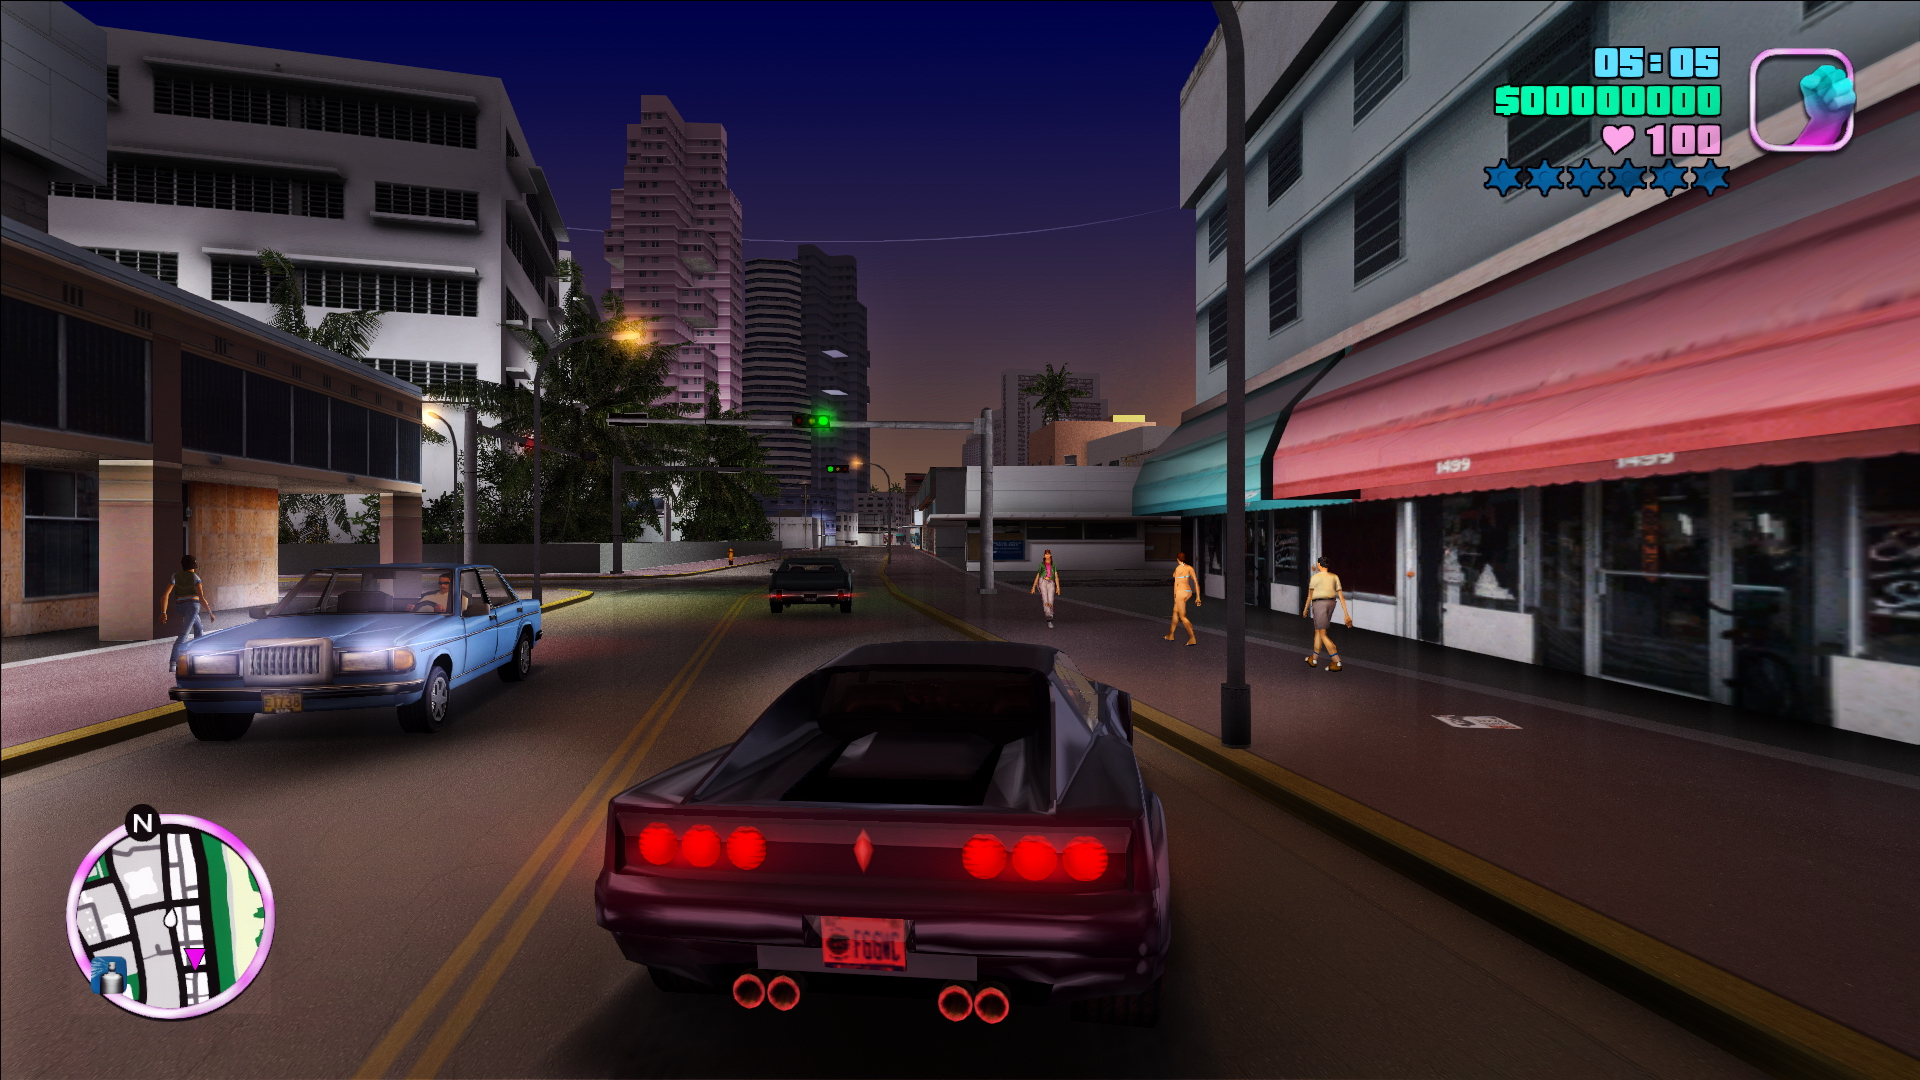 Steam Community :: Guide :: GTA Vice City Beautification Project